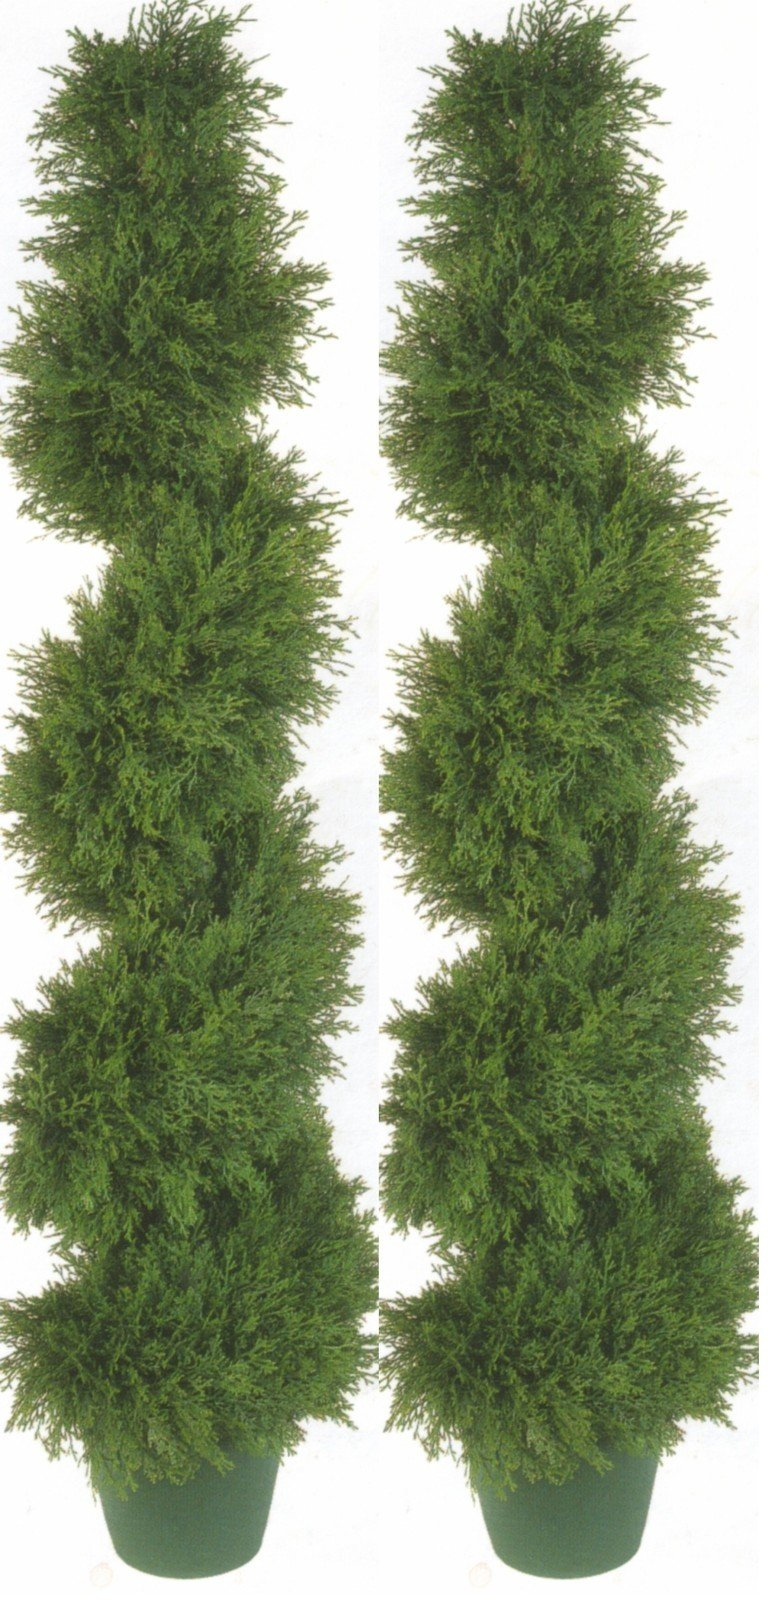 Silk Tree Warehouse Two 4 Foot 3 Inch Artificial Cypress Spiral Topiary Trees Potted Indoor or Outdoor